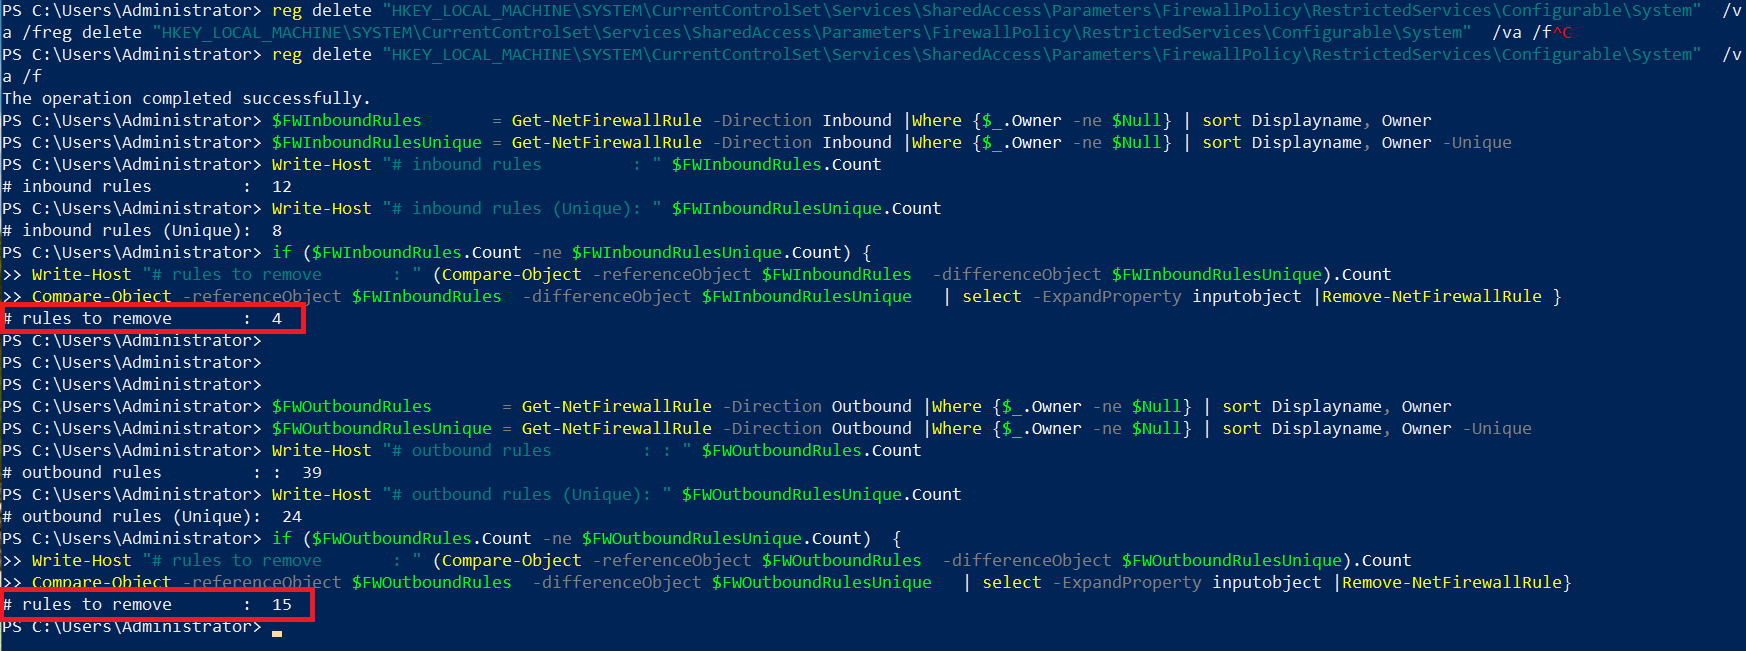 powershell firewall rules to remove